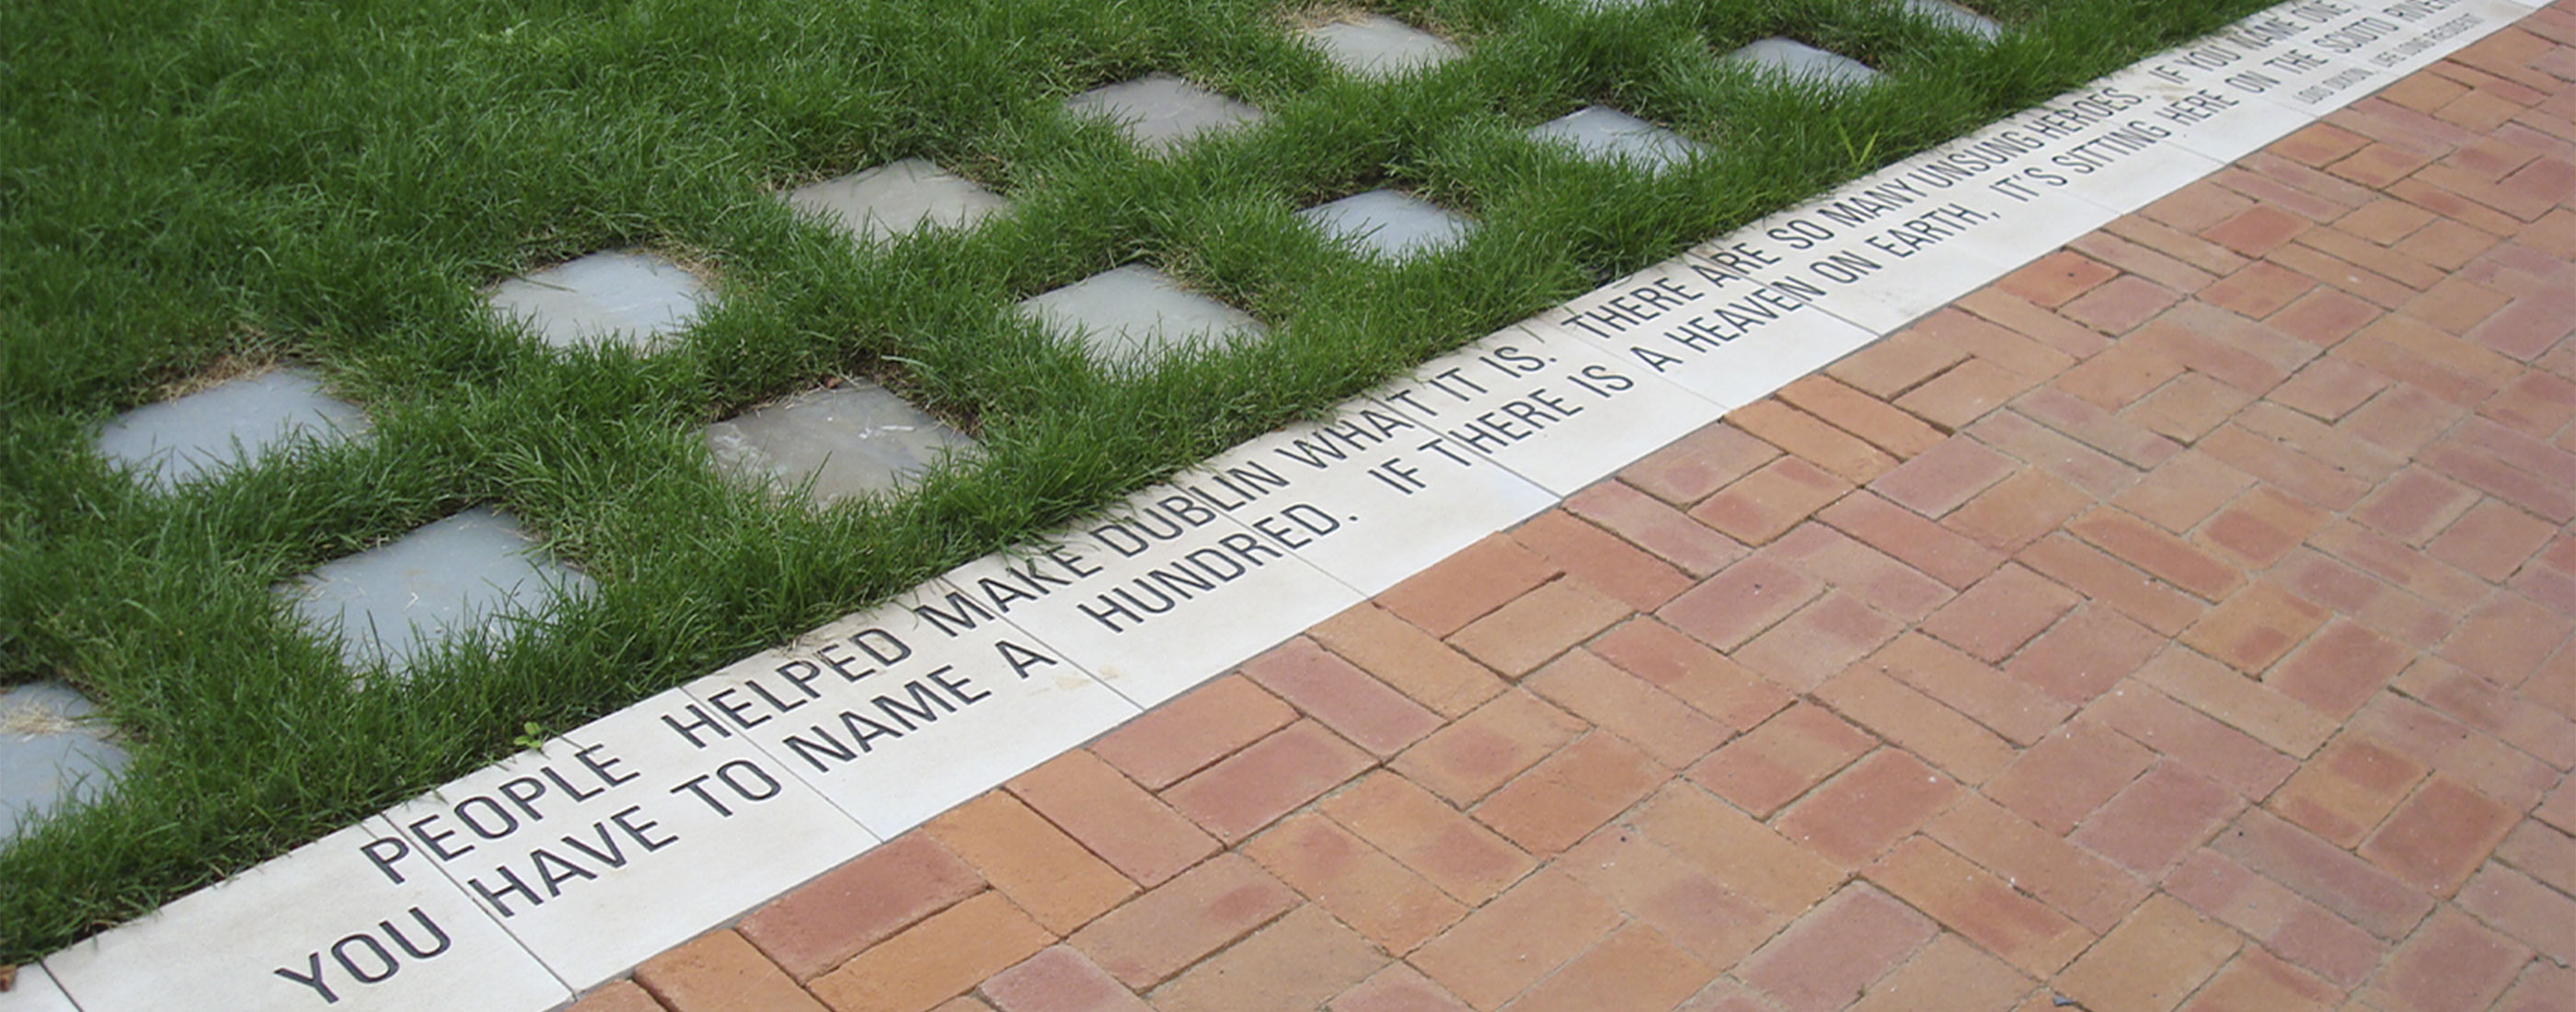 Life long resident quote stamped in BriHi Square's town center.